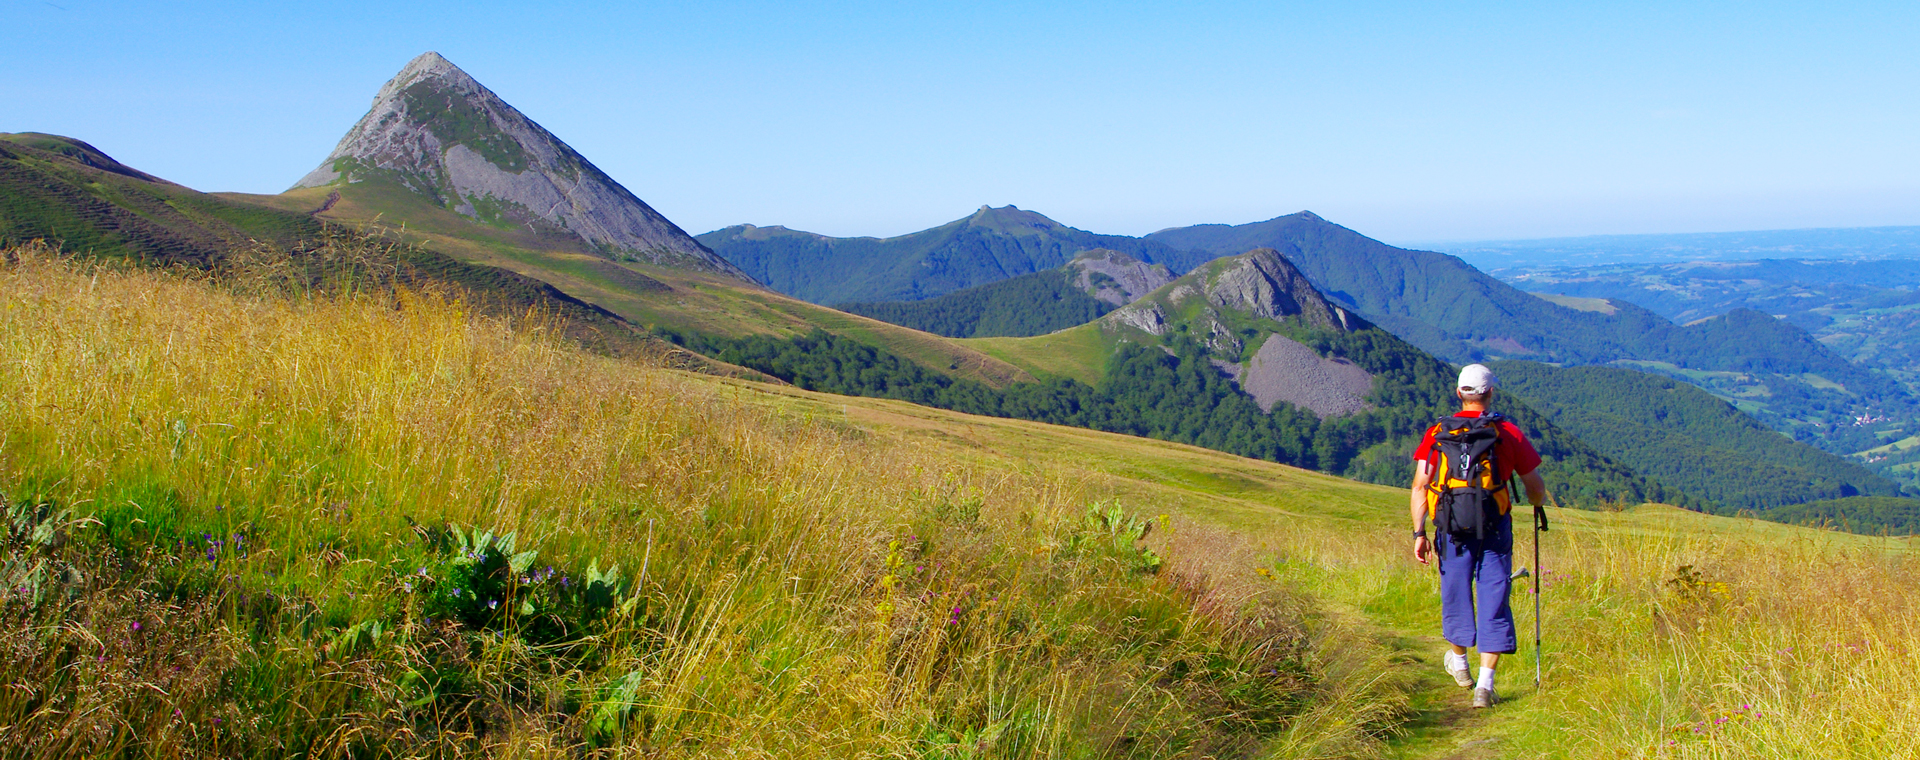 Image Grande Traversée du Massif central, du massif du Sancy au Cantal